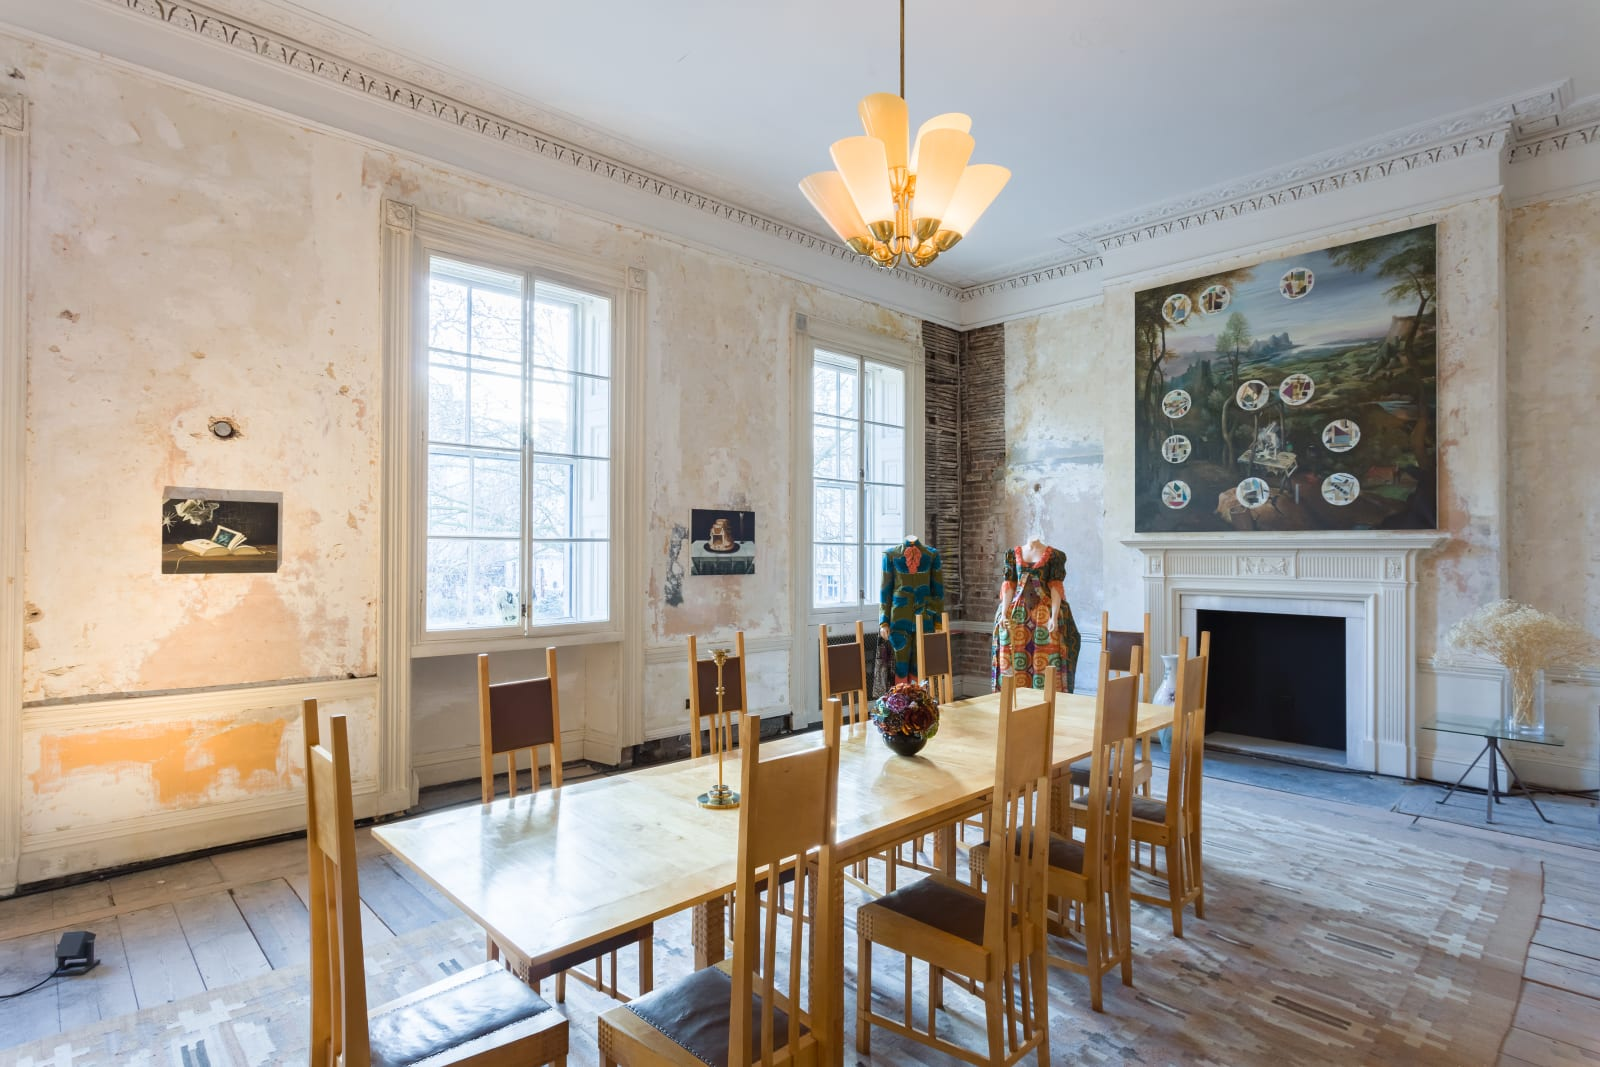 <p>Installation view: 'Stephen Friedman Gallery at The London House of Modernity', London (2021).</p>